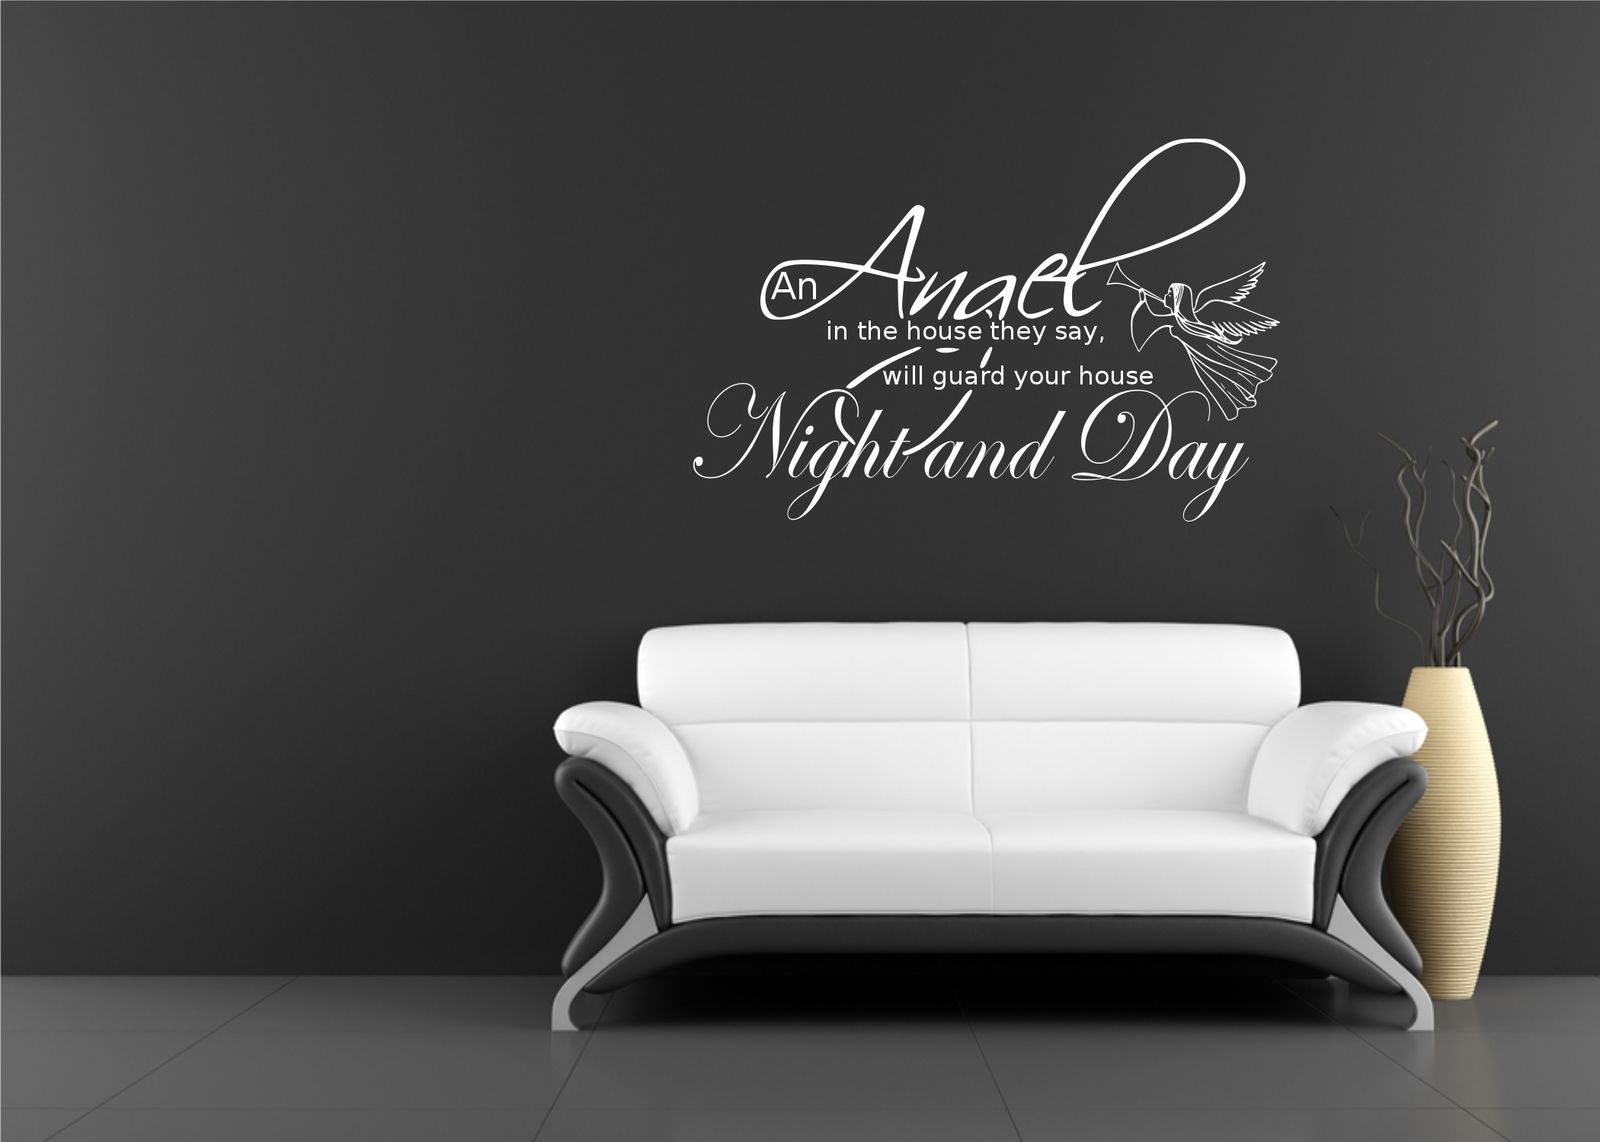 art wall stickers shenra com angel night home quote art wall sticker decal mural stencil vinyl